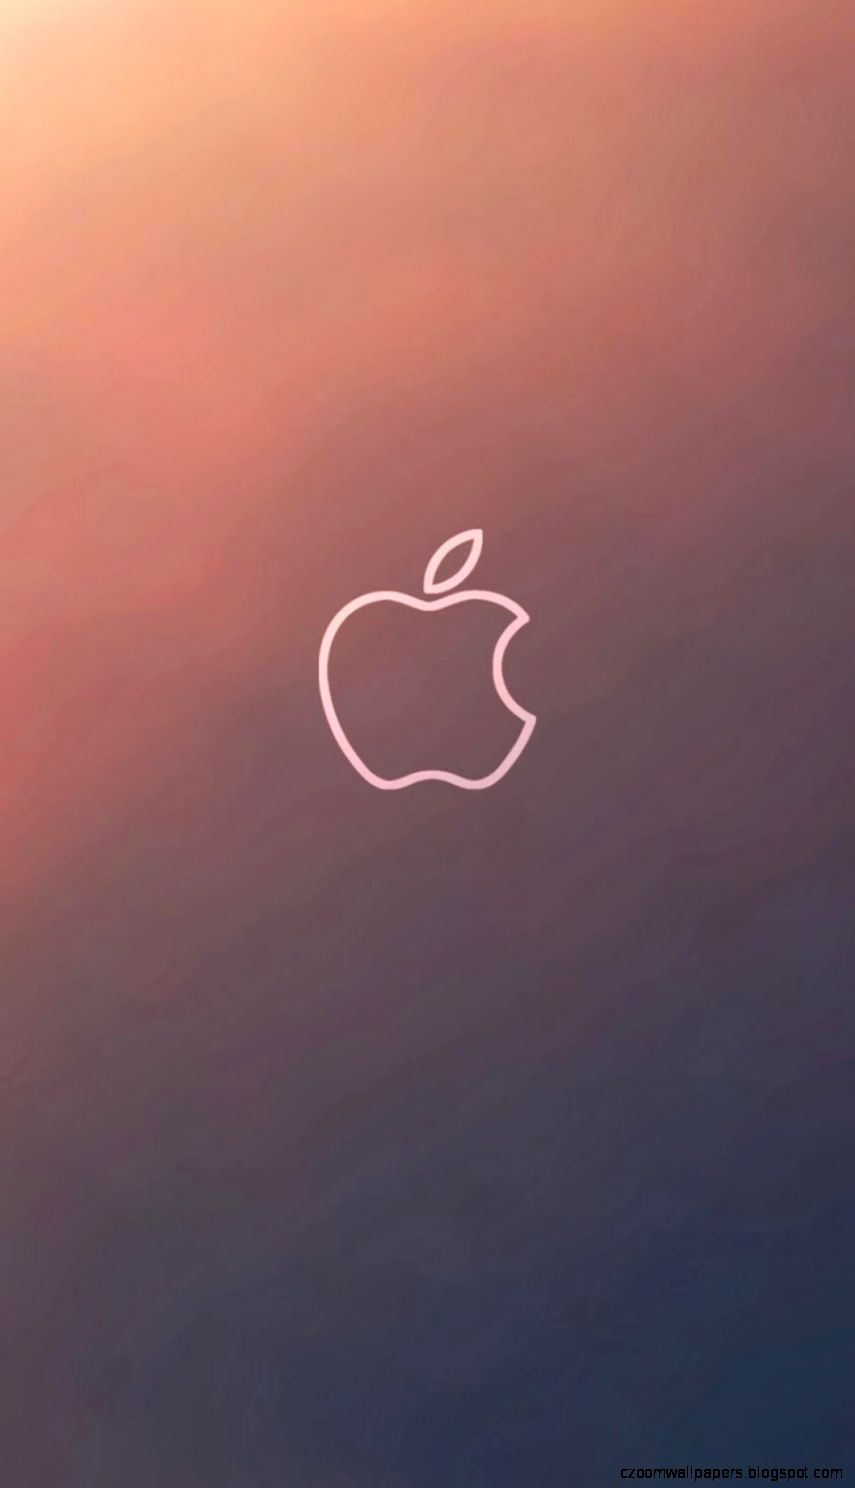 iPhone 6 6 Plus Wallpaper   Apple Logo   Covers Heat